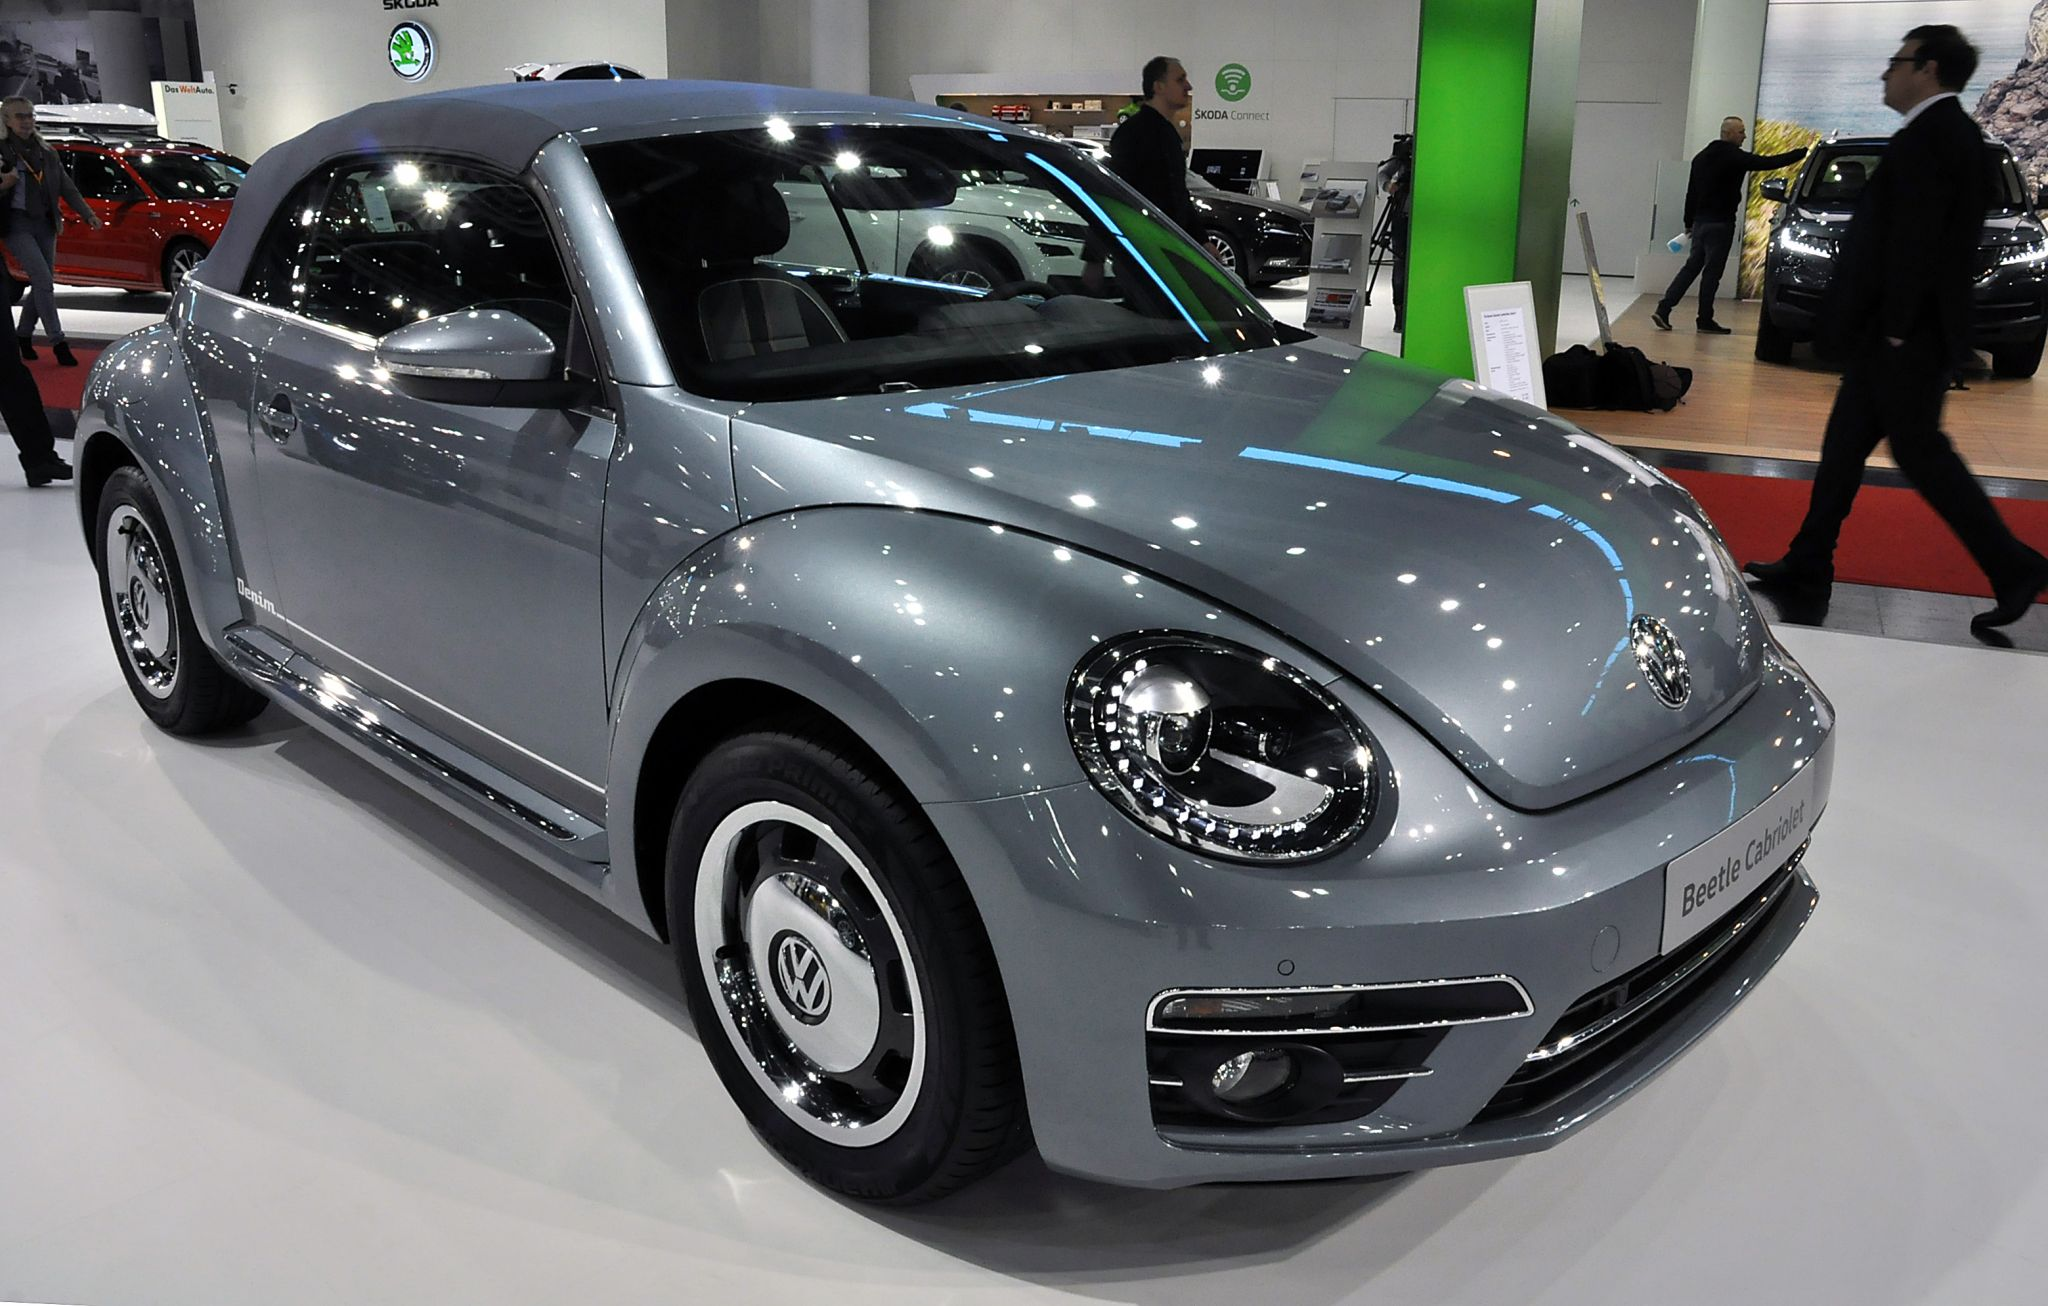 Volkswagen to stop making Beetles